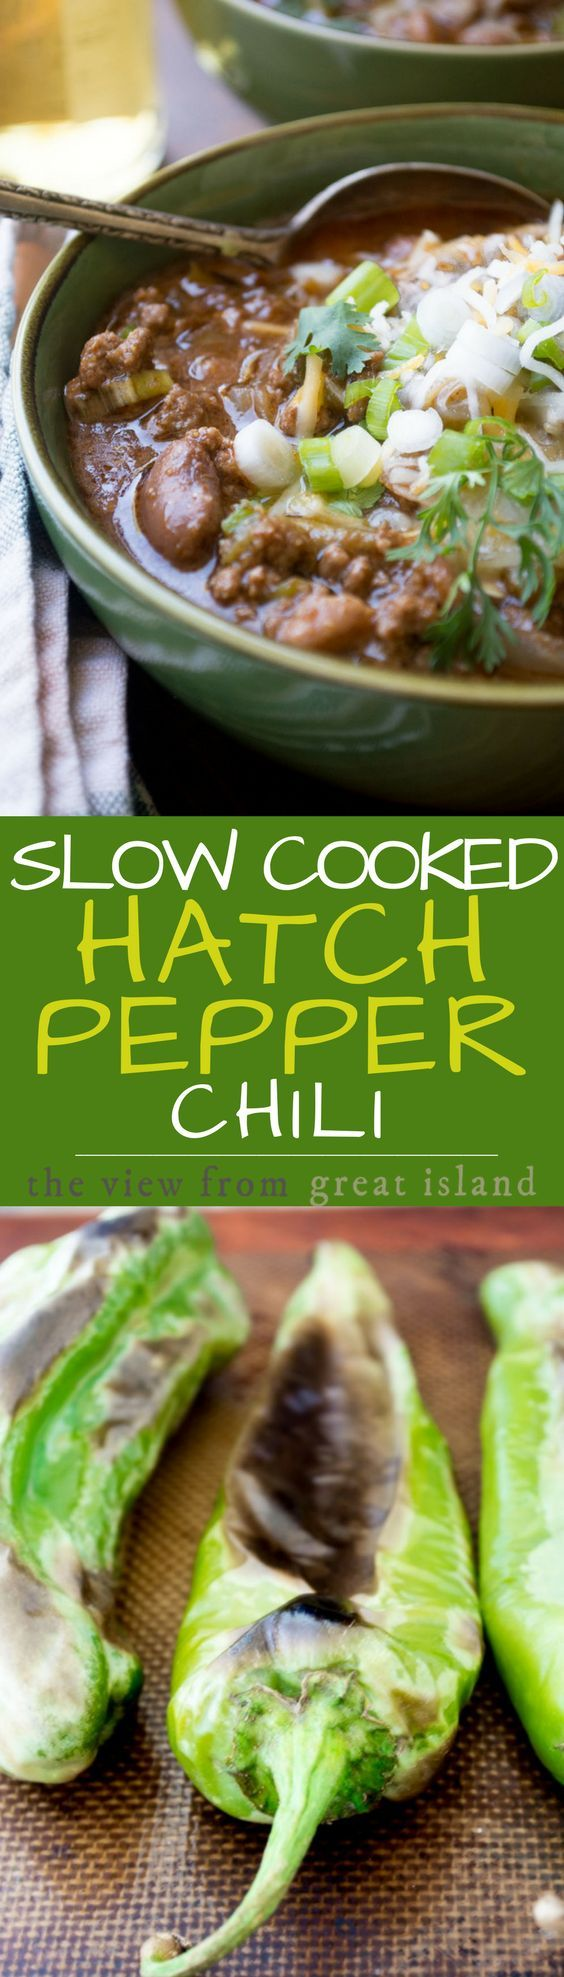 Slow Cooked Hatch Pepper Chili ~ this lush chili is perfect for the summer months when fresh Hatch chiles from New Mexico are available ~ but use canned or frozen chiles the rest of the year so you don't miss this amazing slow cooked meal.   crock pot   stews   New mexican chili   Hatch chili peppers  